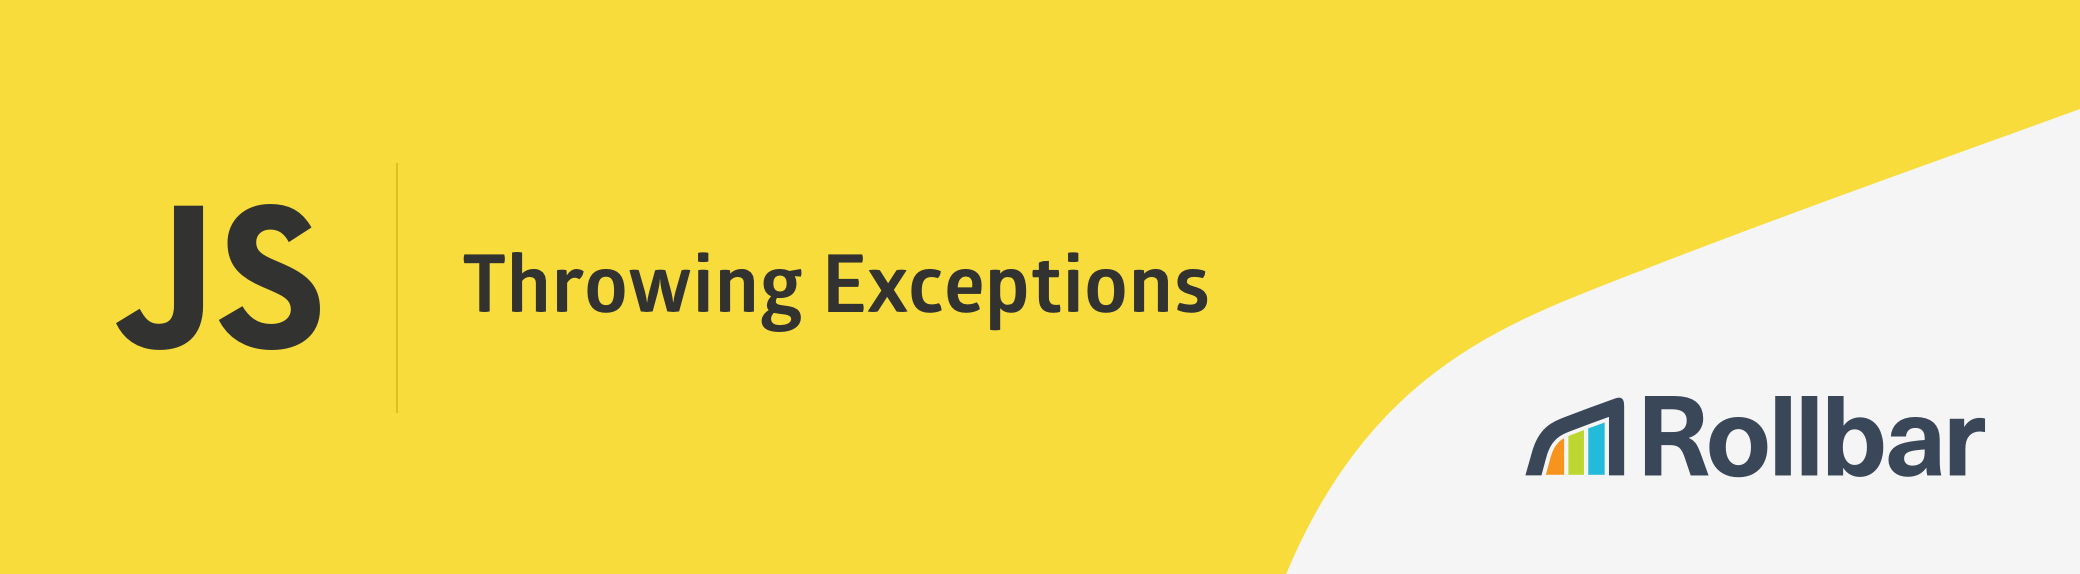 Javascript Throwing Exceptions